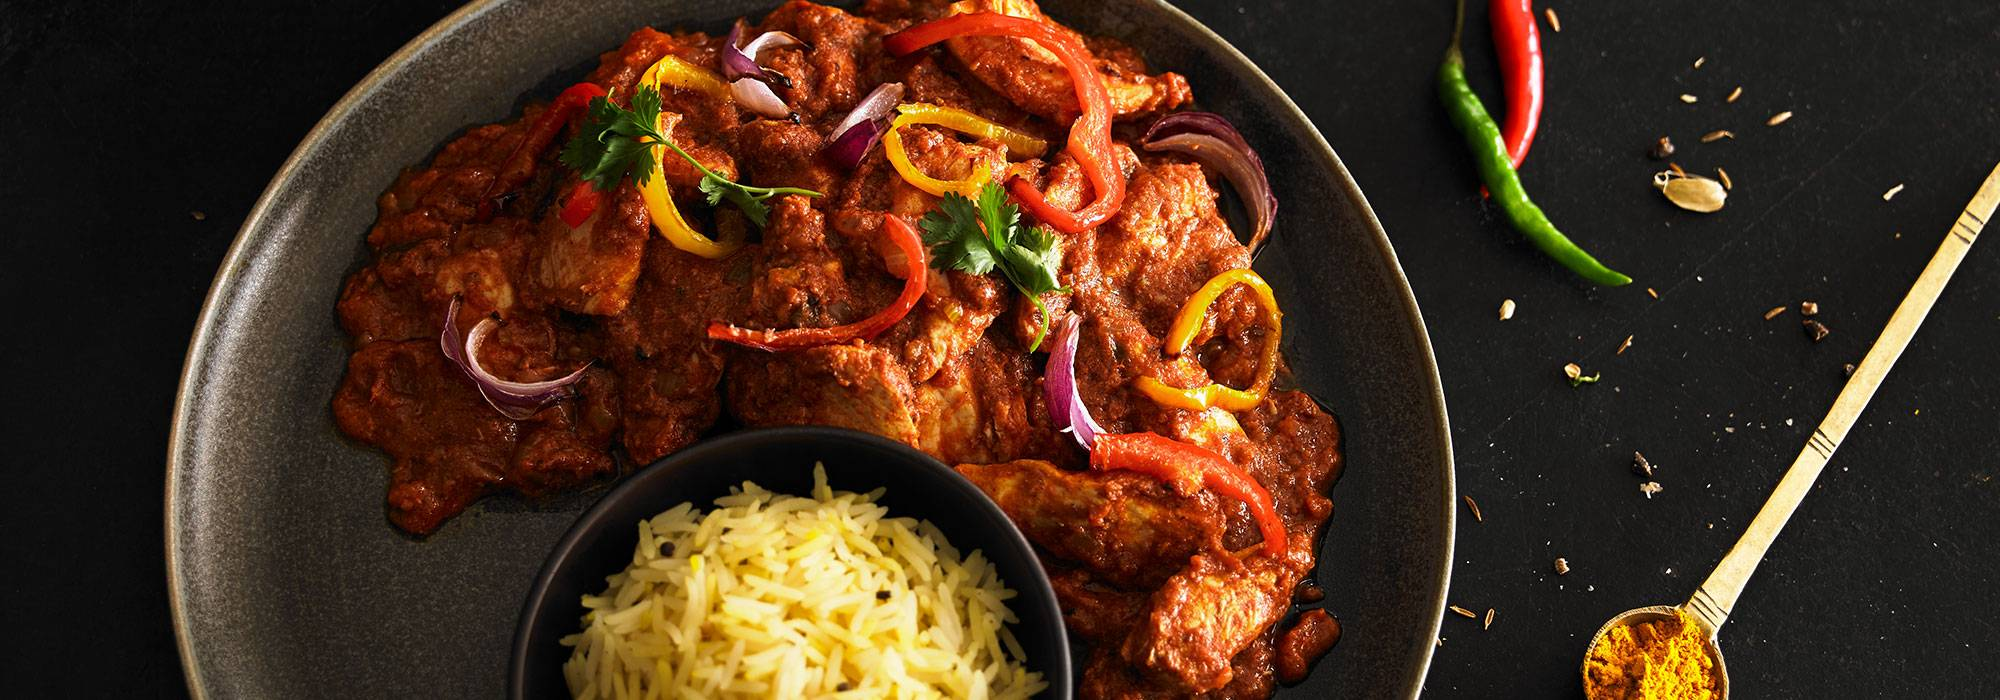 CHICKEN JALFREZI & PILAU RICE